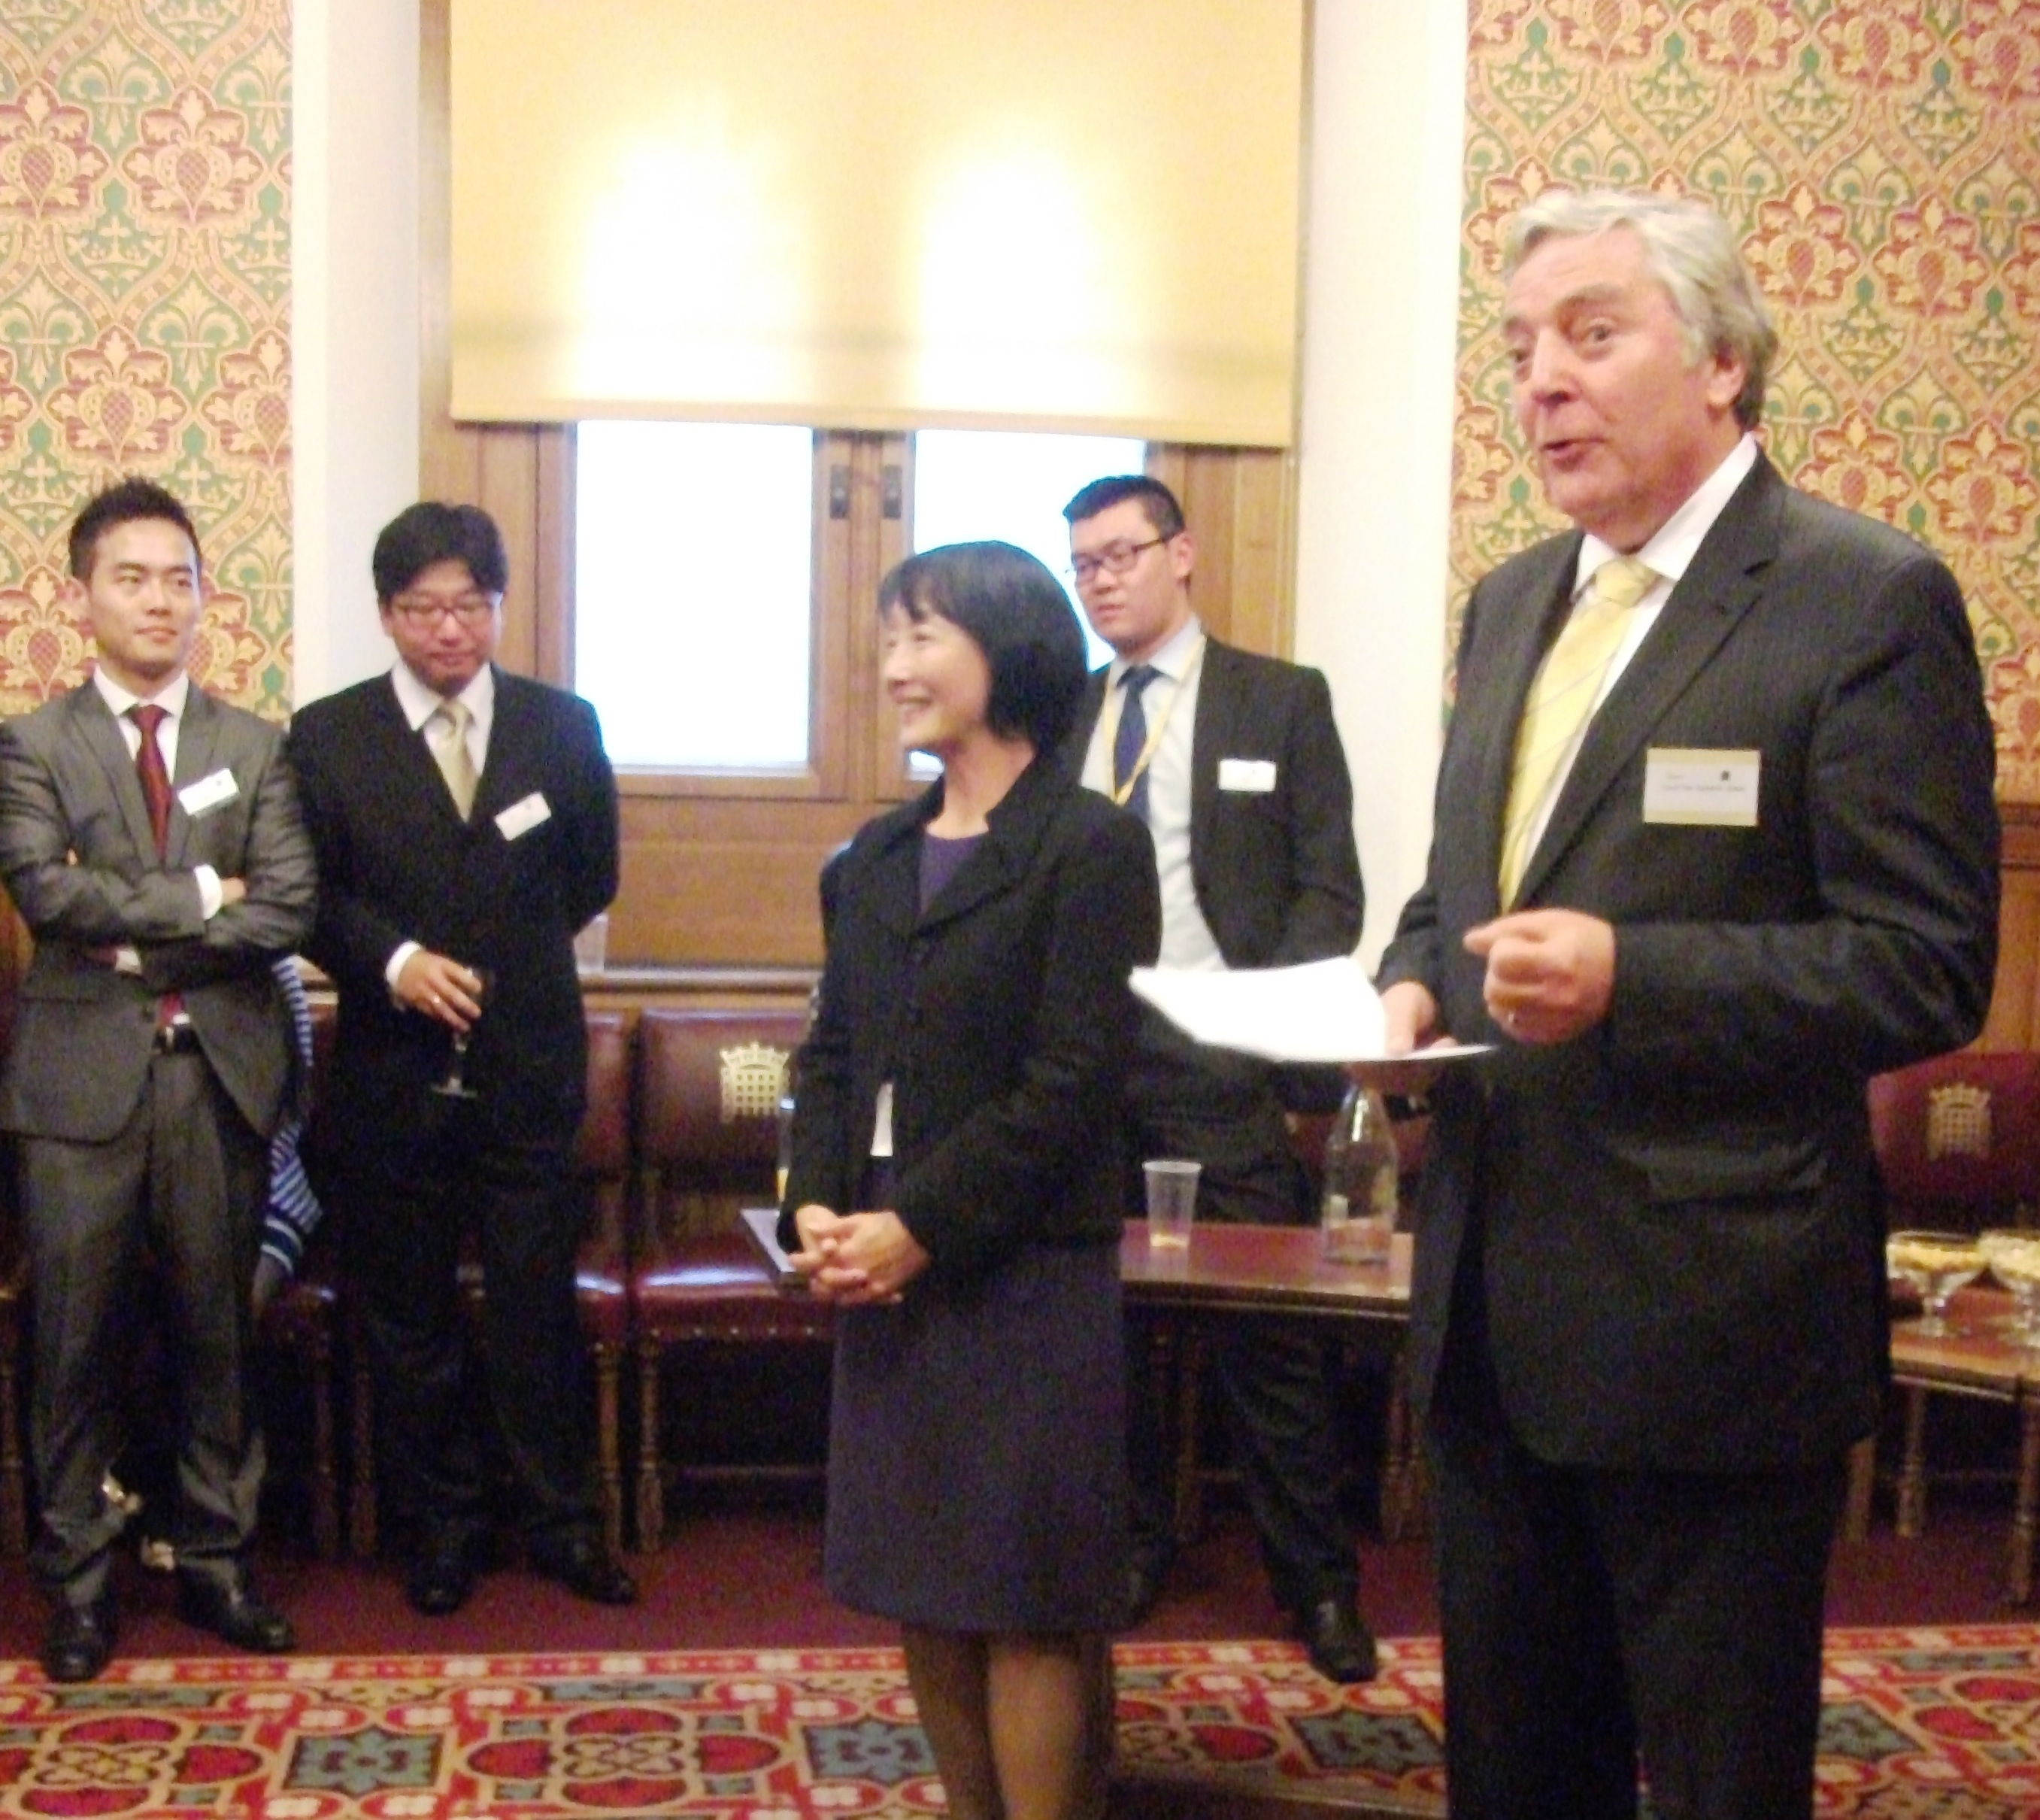 An East West Chinese Lib Dem evening at the Lords